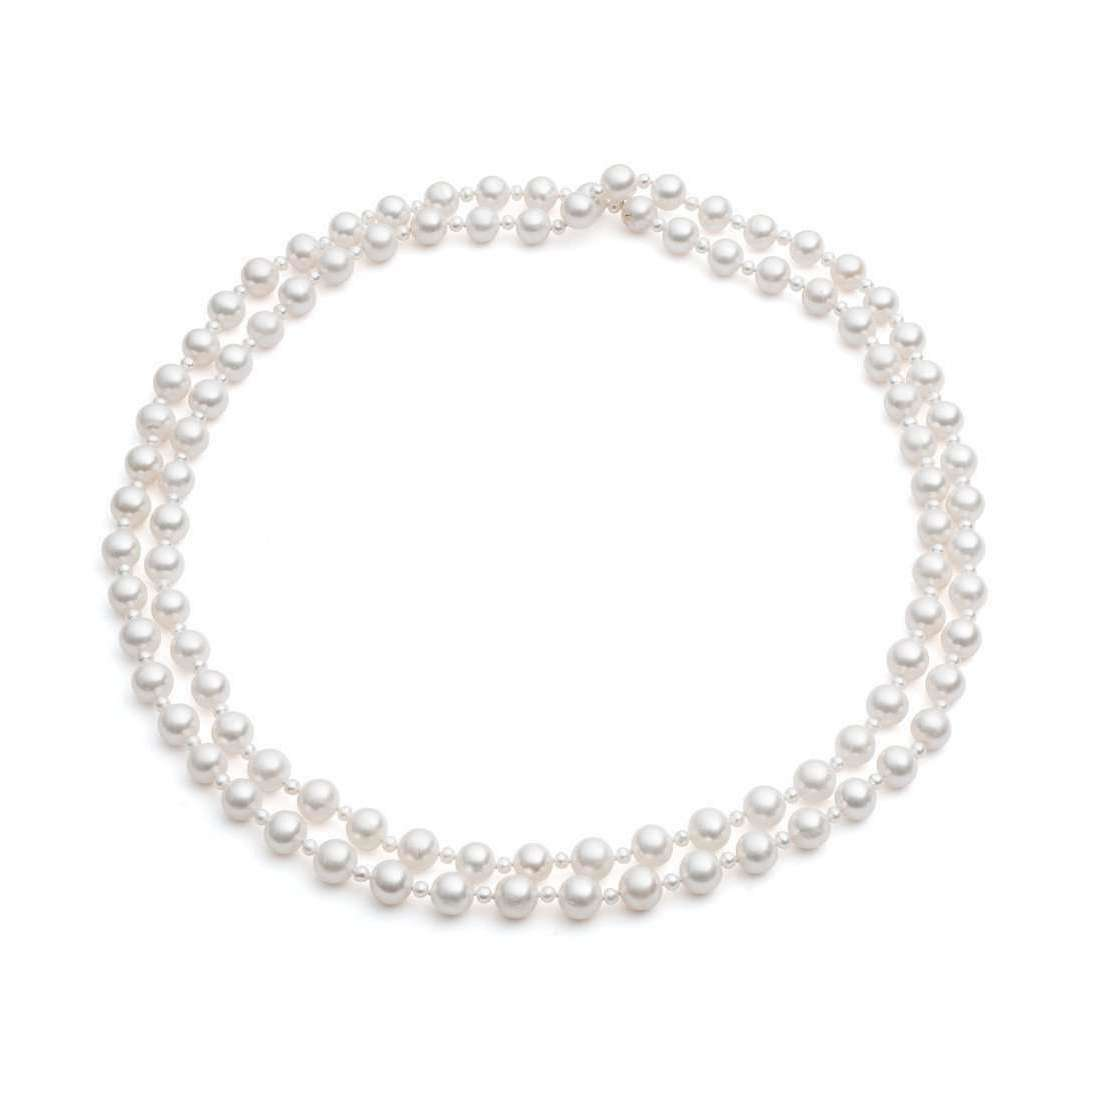 Pearl Necklace, Freshwater Pearls